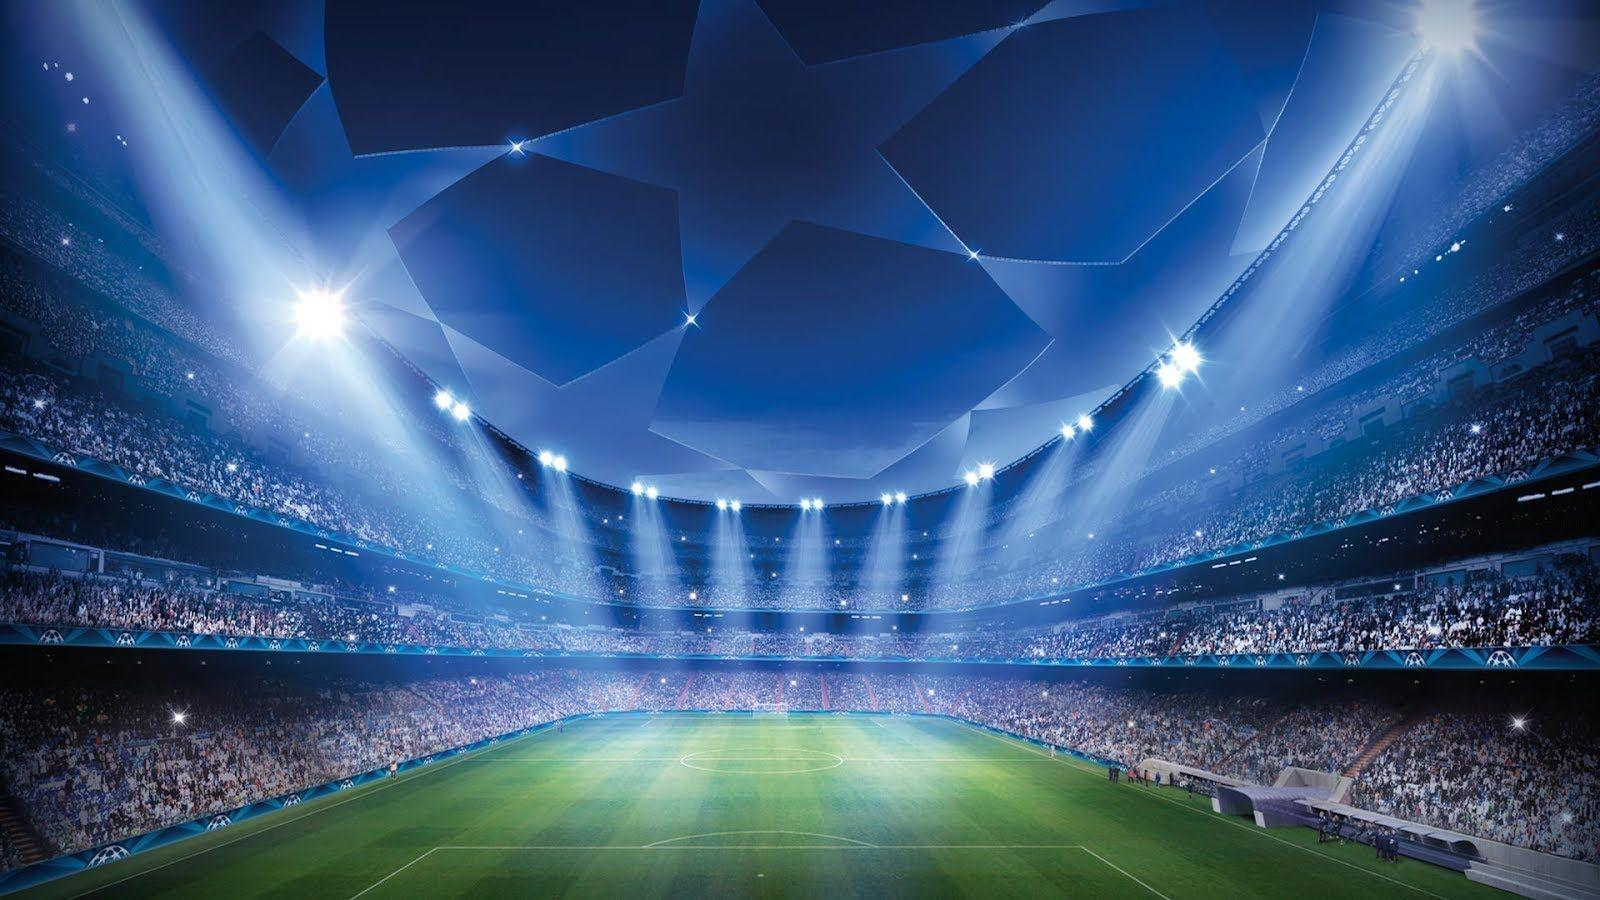 Best Champions League Wallpapers